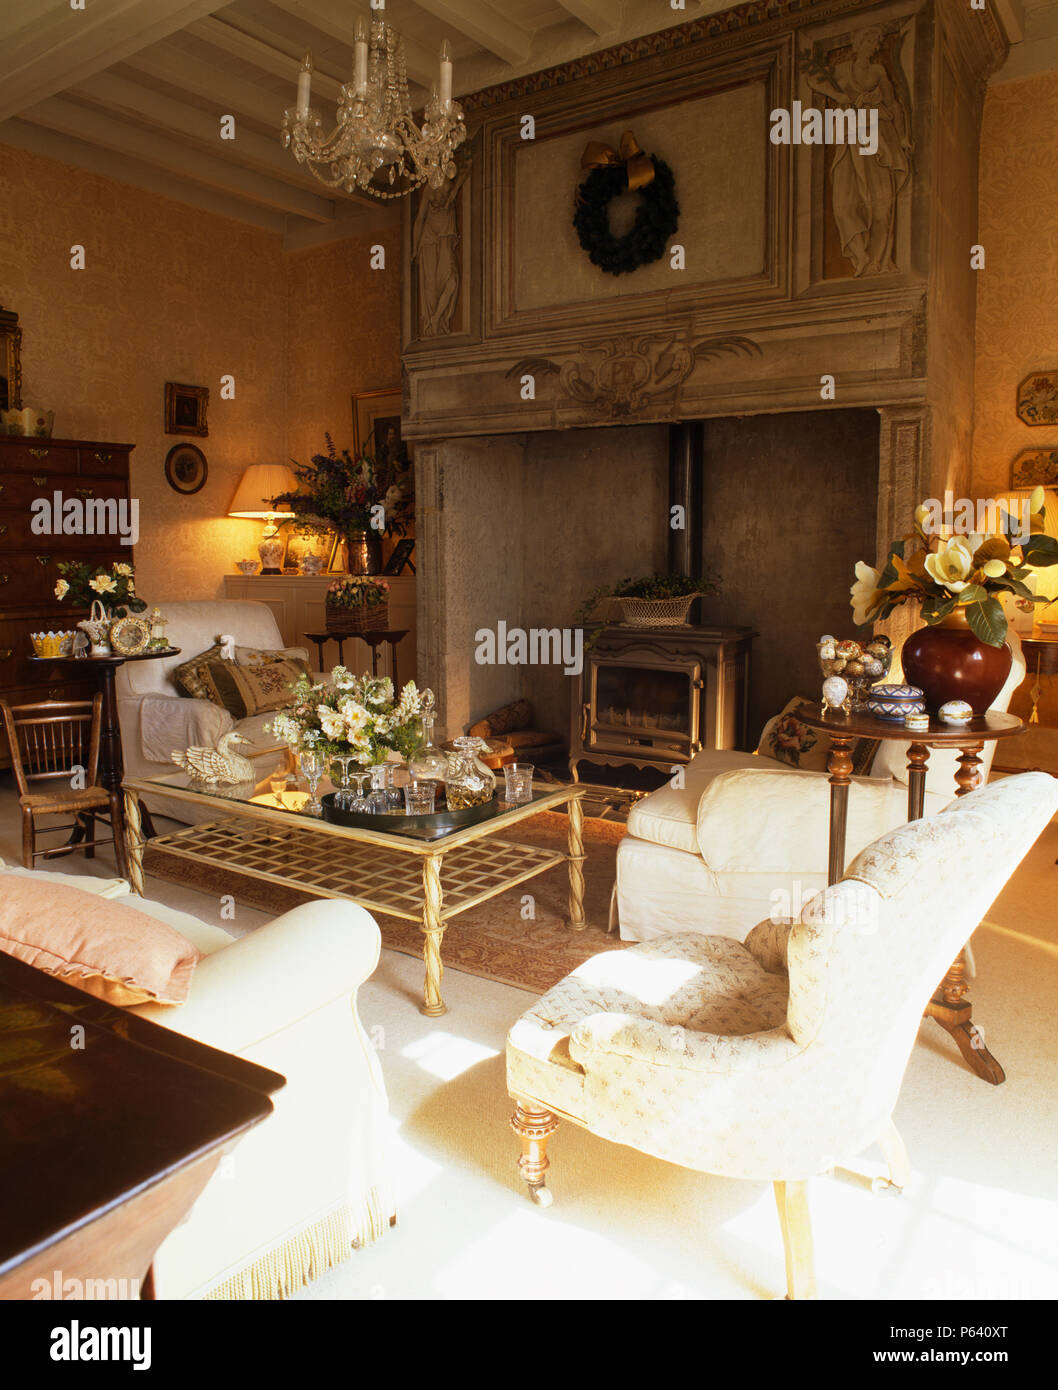 French Country Fireplace Cream Armchair And Sofas In French Country Living Room With Wood